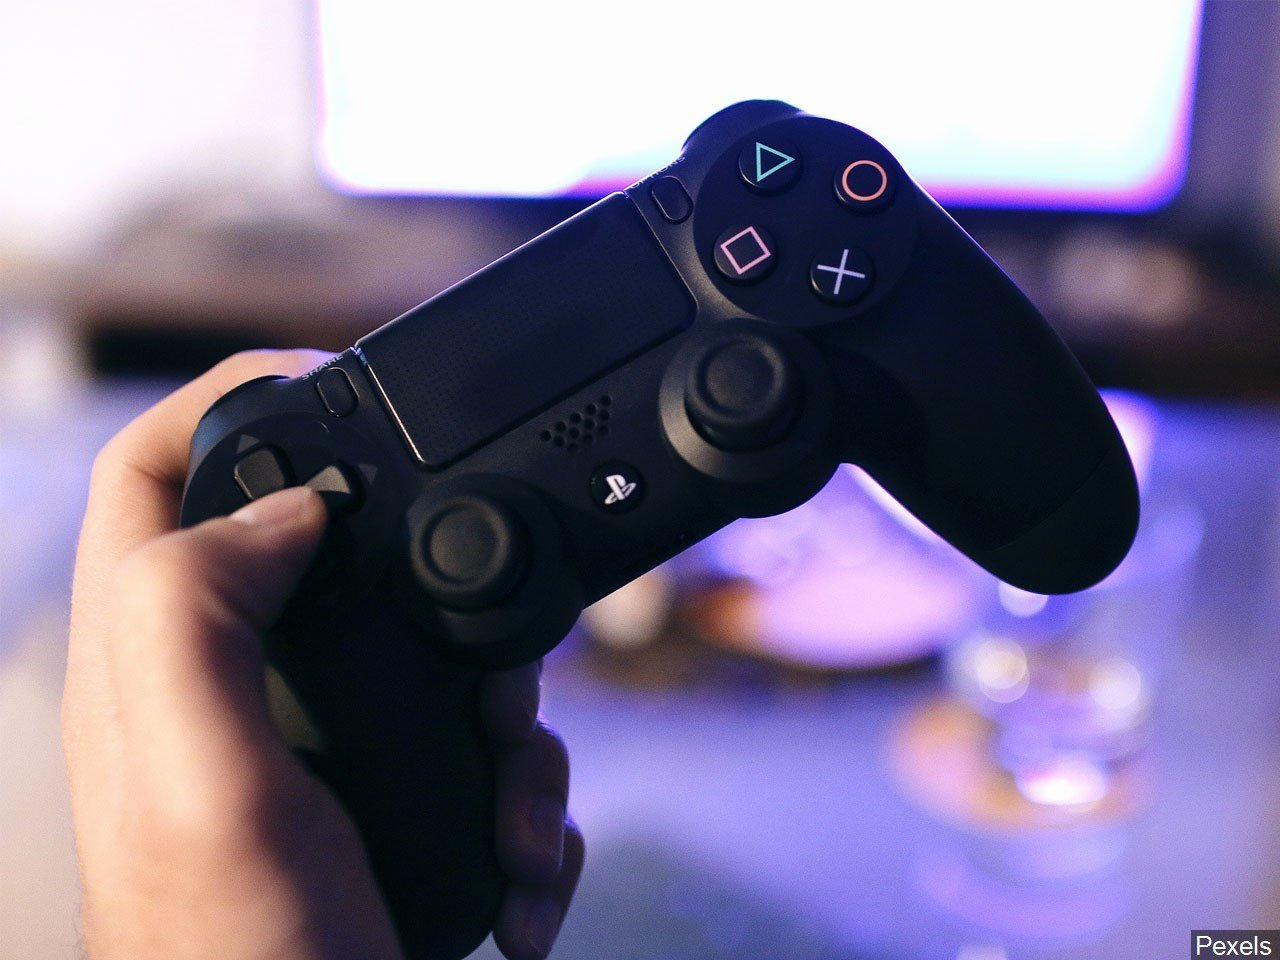 Video game addiction now considered a medical condition